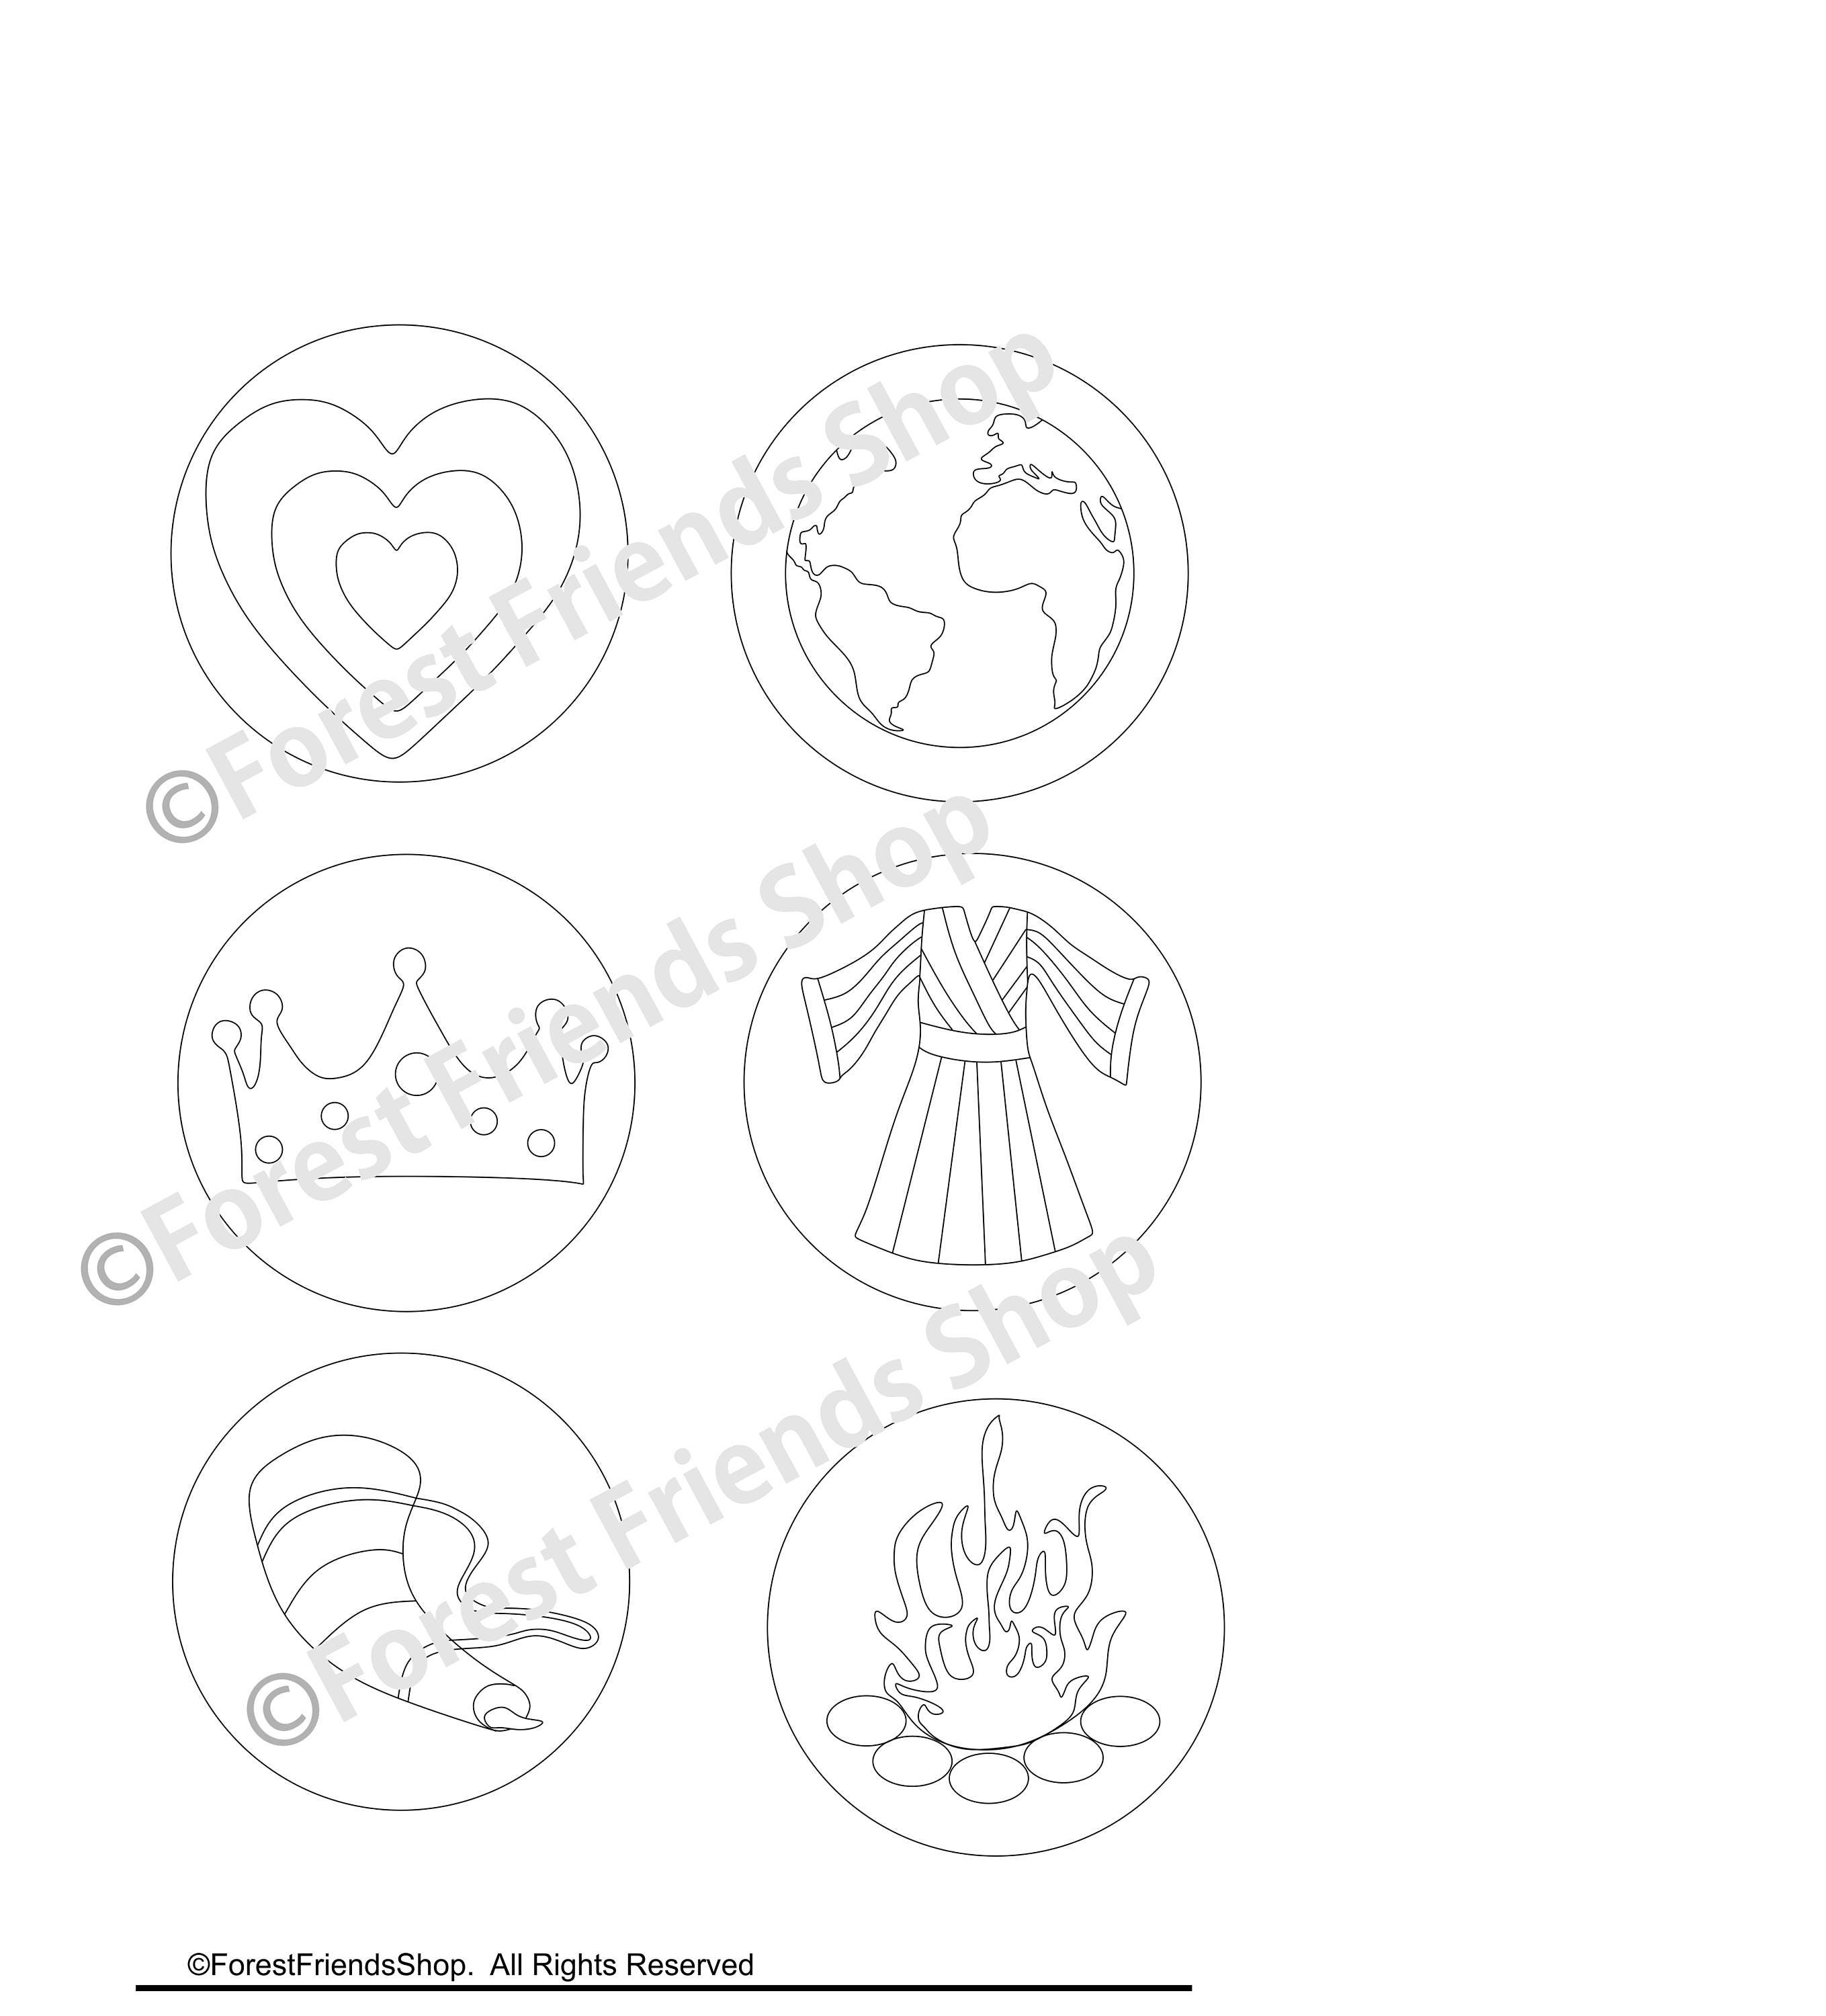 Printable Jesse Tree Ornaments Childrens Ornament Coloring Pages Advent Activity Kids Christmas Craft Sunday School